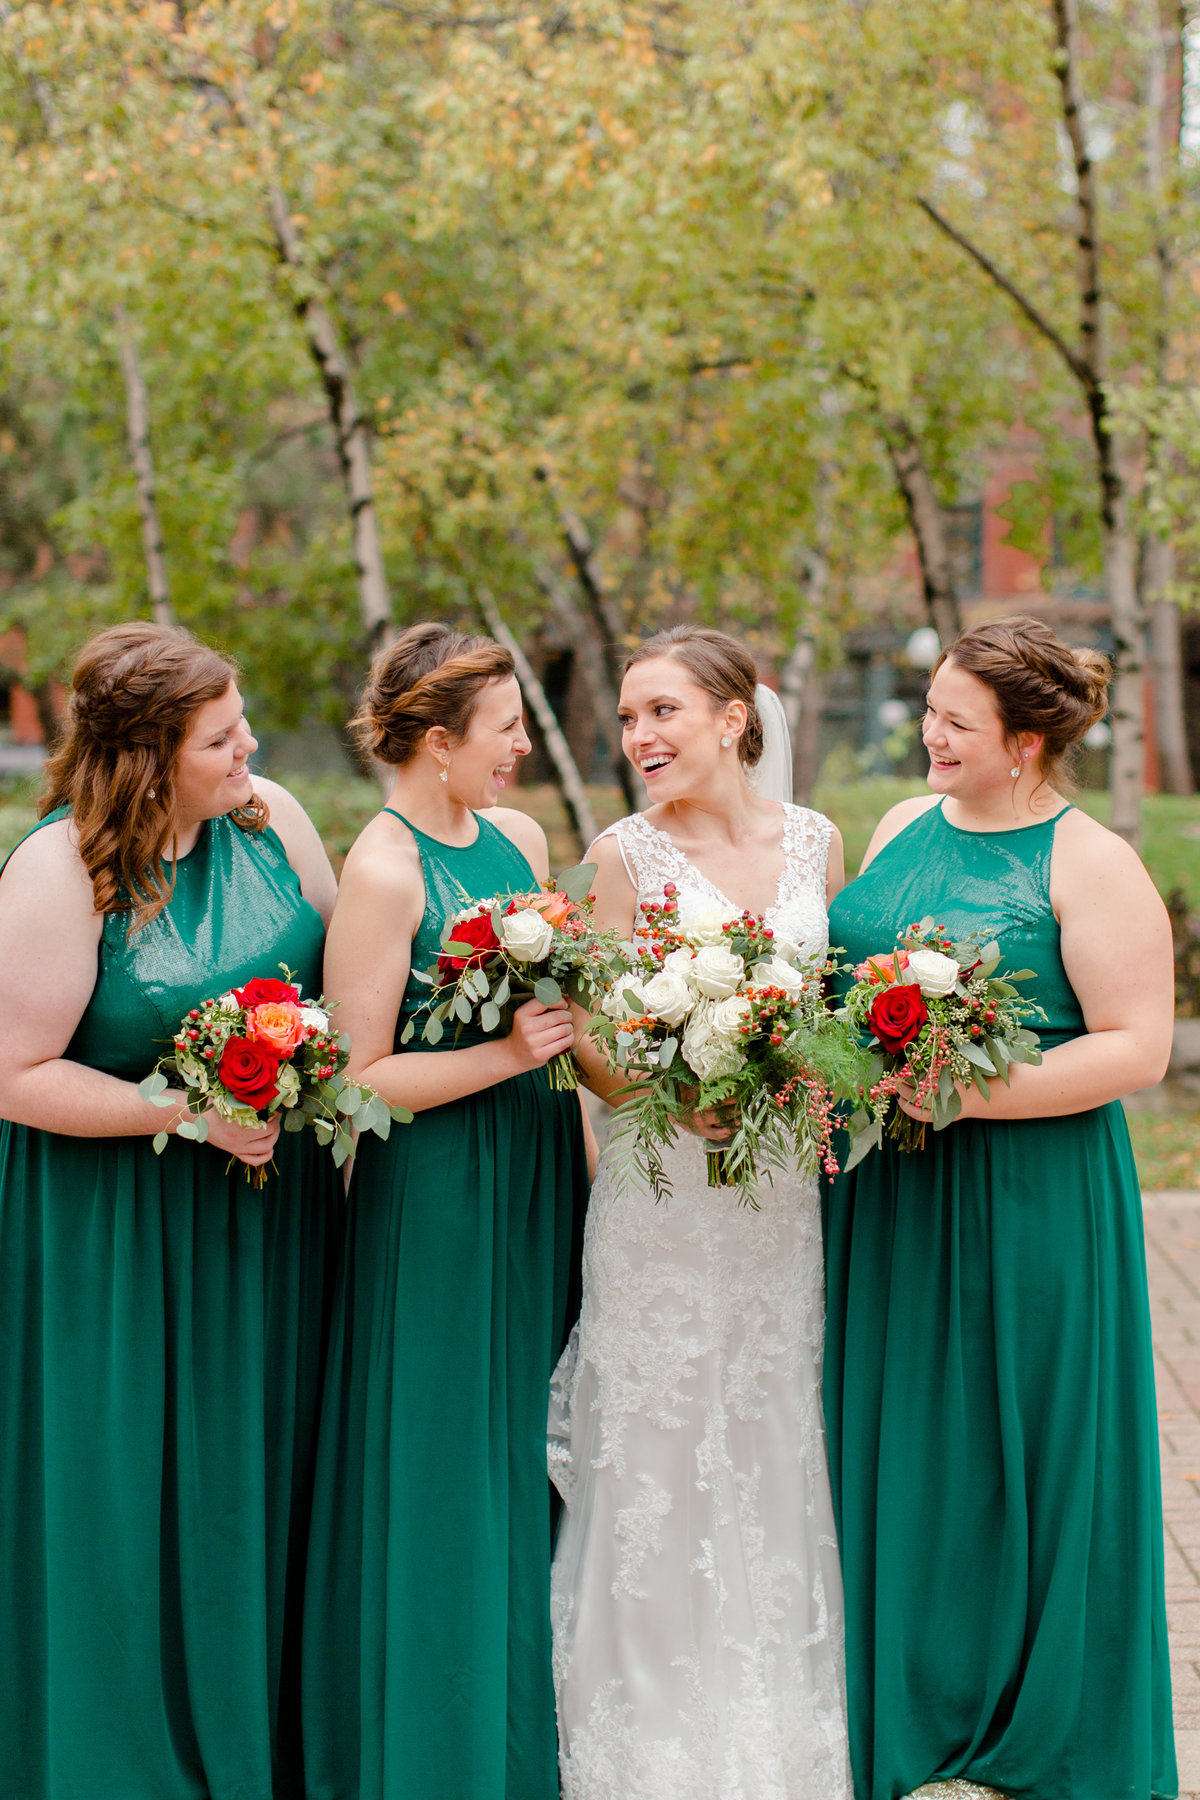 Luke and Ashley - Fall Wedding Pictures at Mears Park in Saint Paul, Minnesota